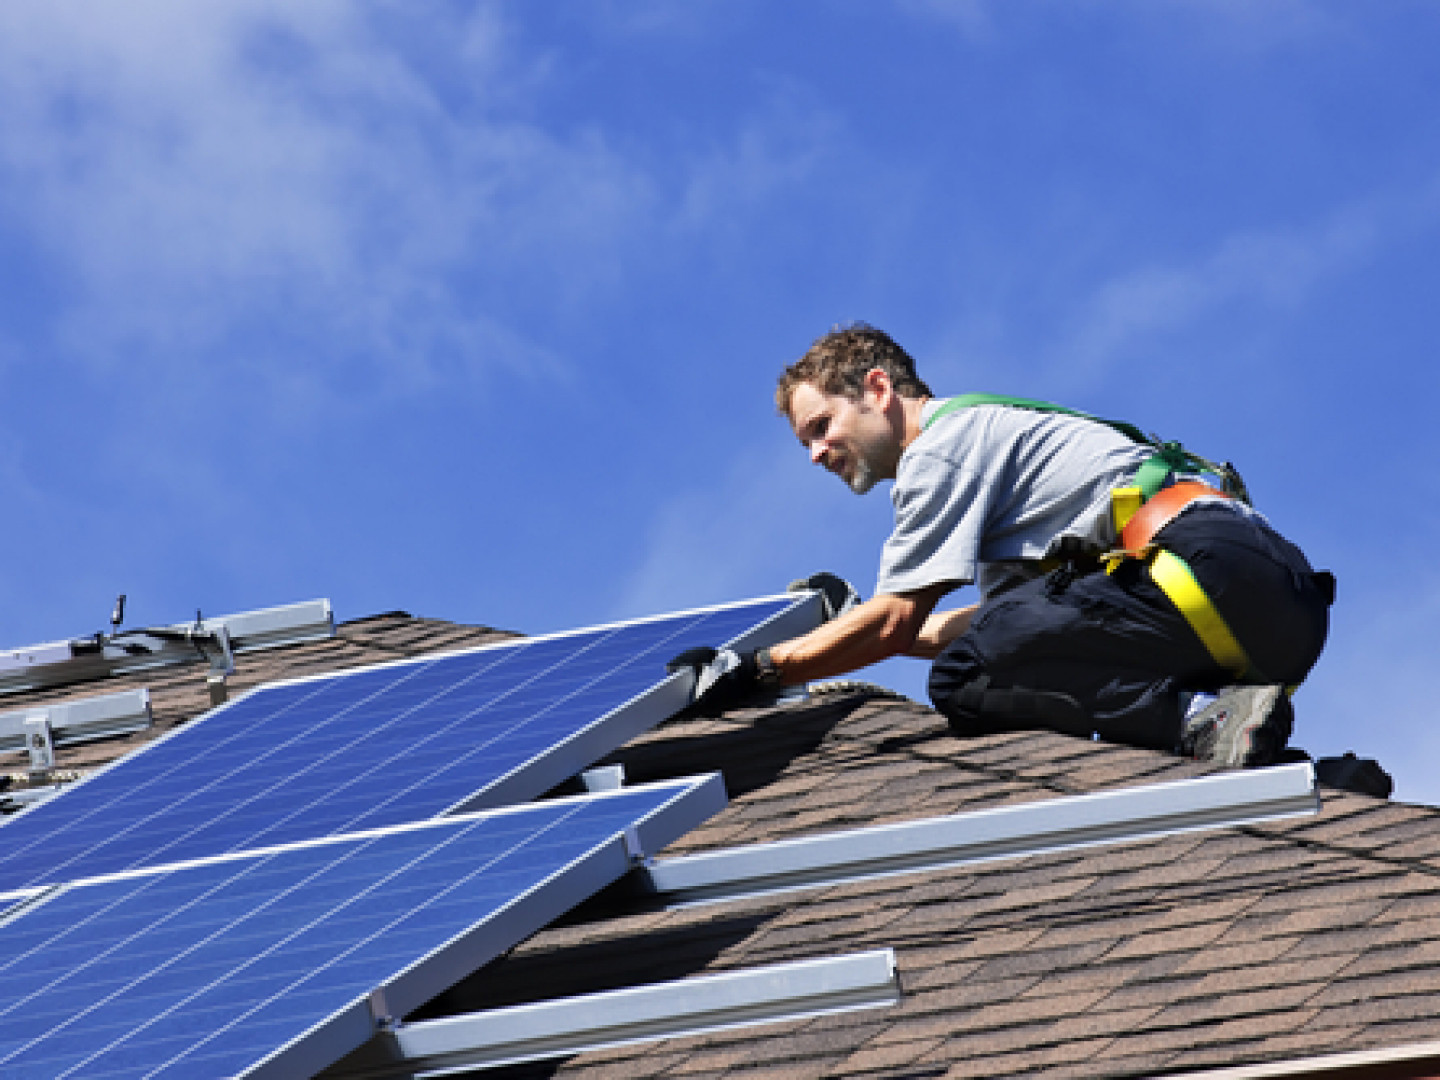 Don't Neglect Your Solar Panel System